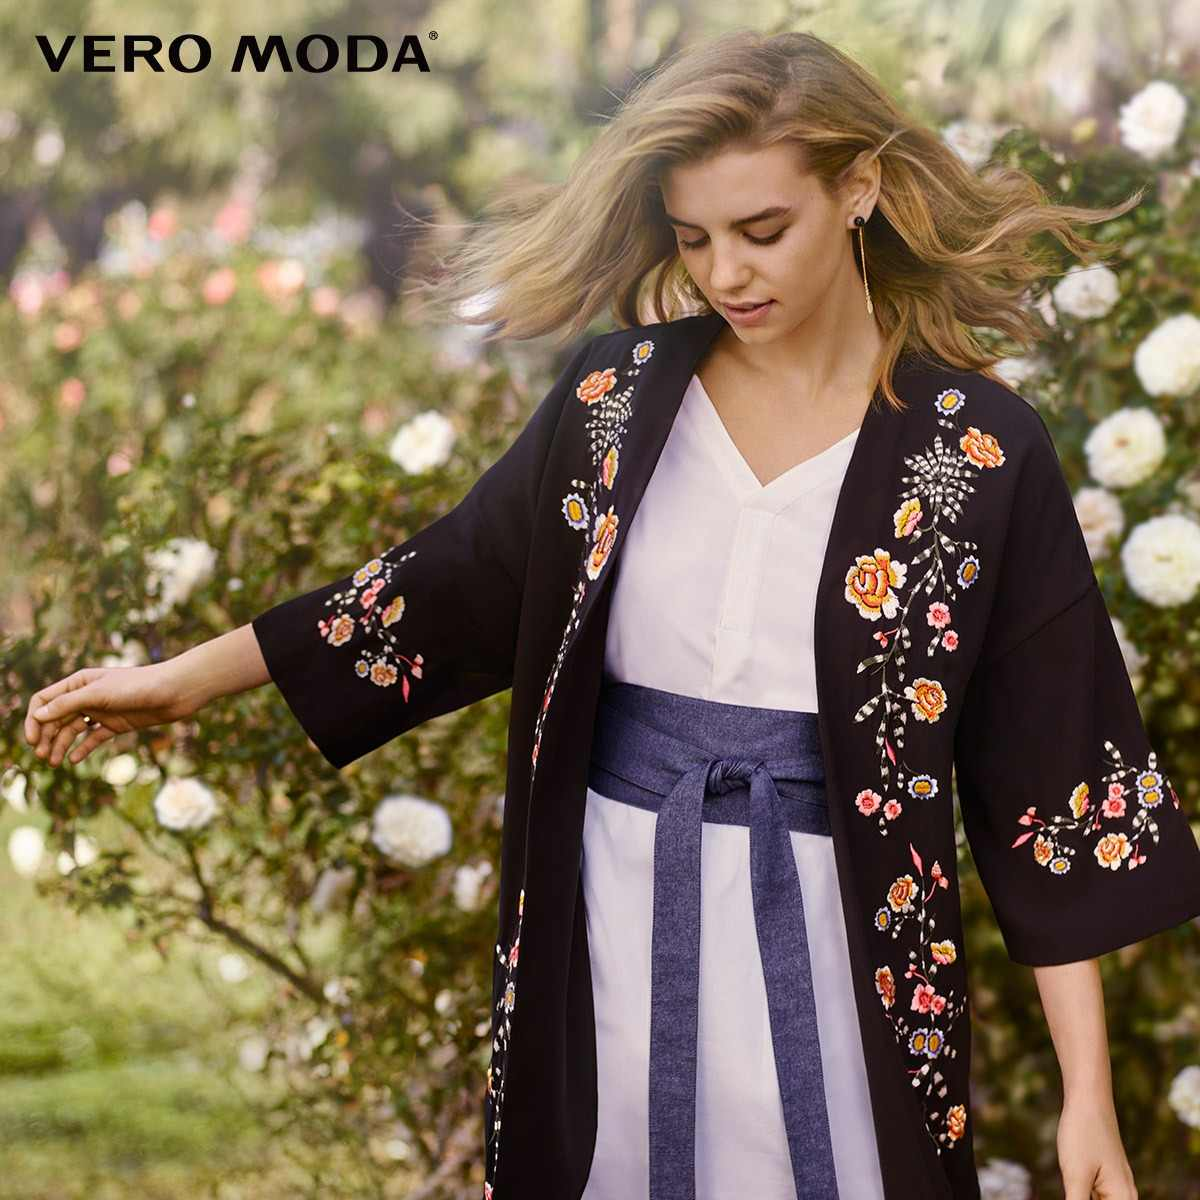 Vero Moda floral embroidered drop shoulder sleeve chiffon jacket |318121549